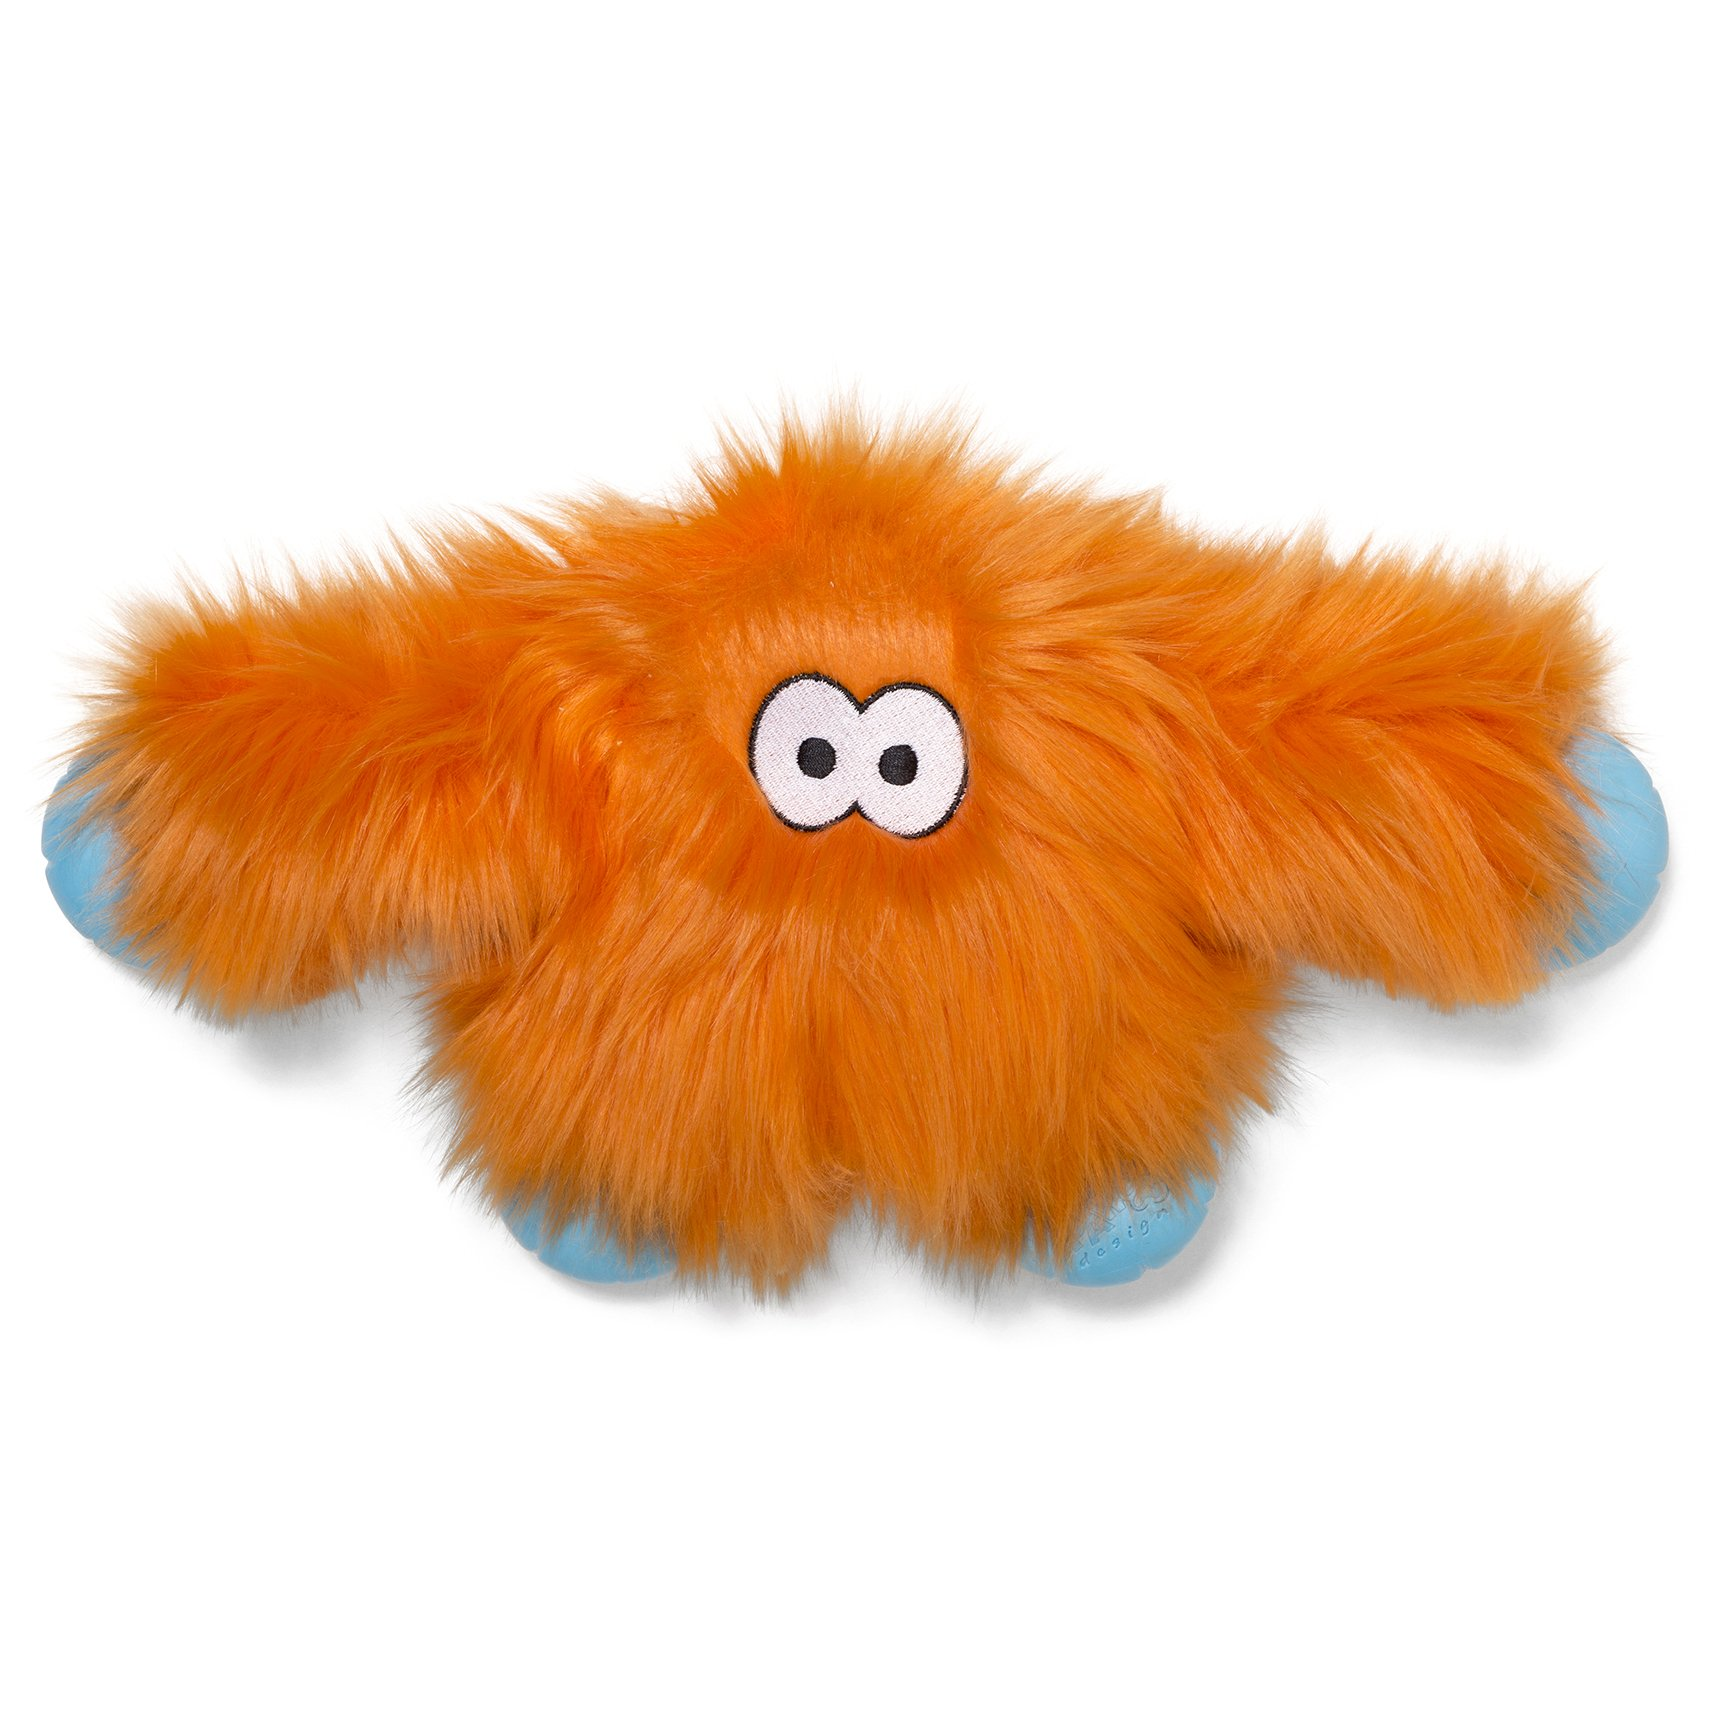 West Paw Rowdies with HardyTex and Zogoflex, Durable Plush Dog Toy for Medium to Large Dogs, Jefferson, Orange Fur